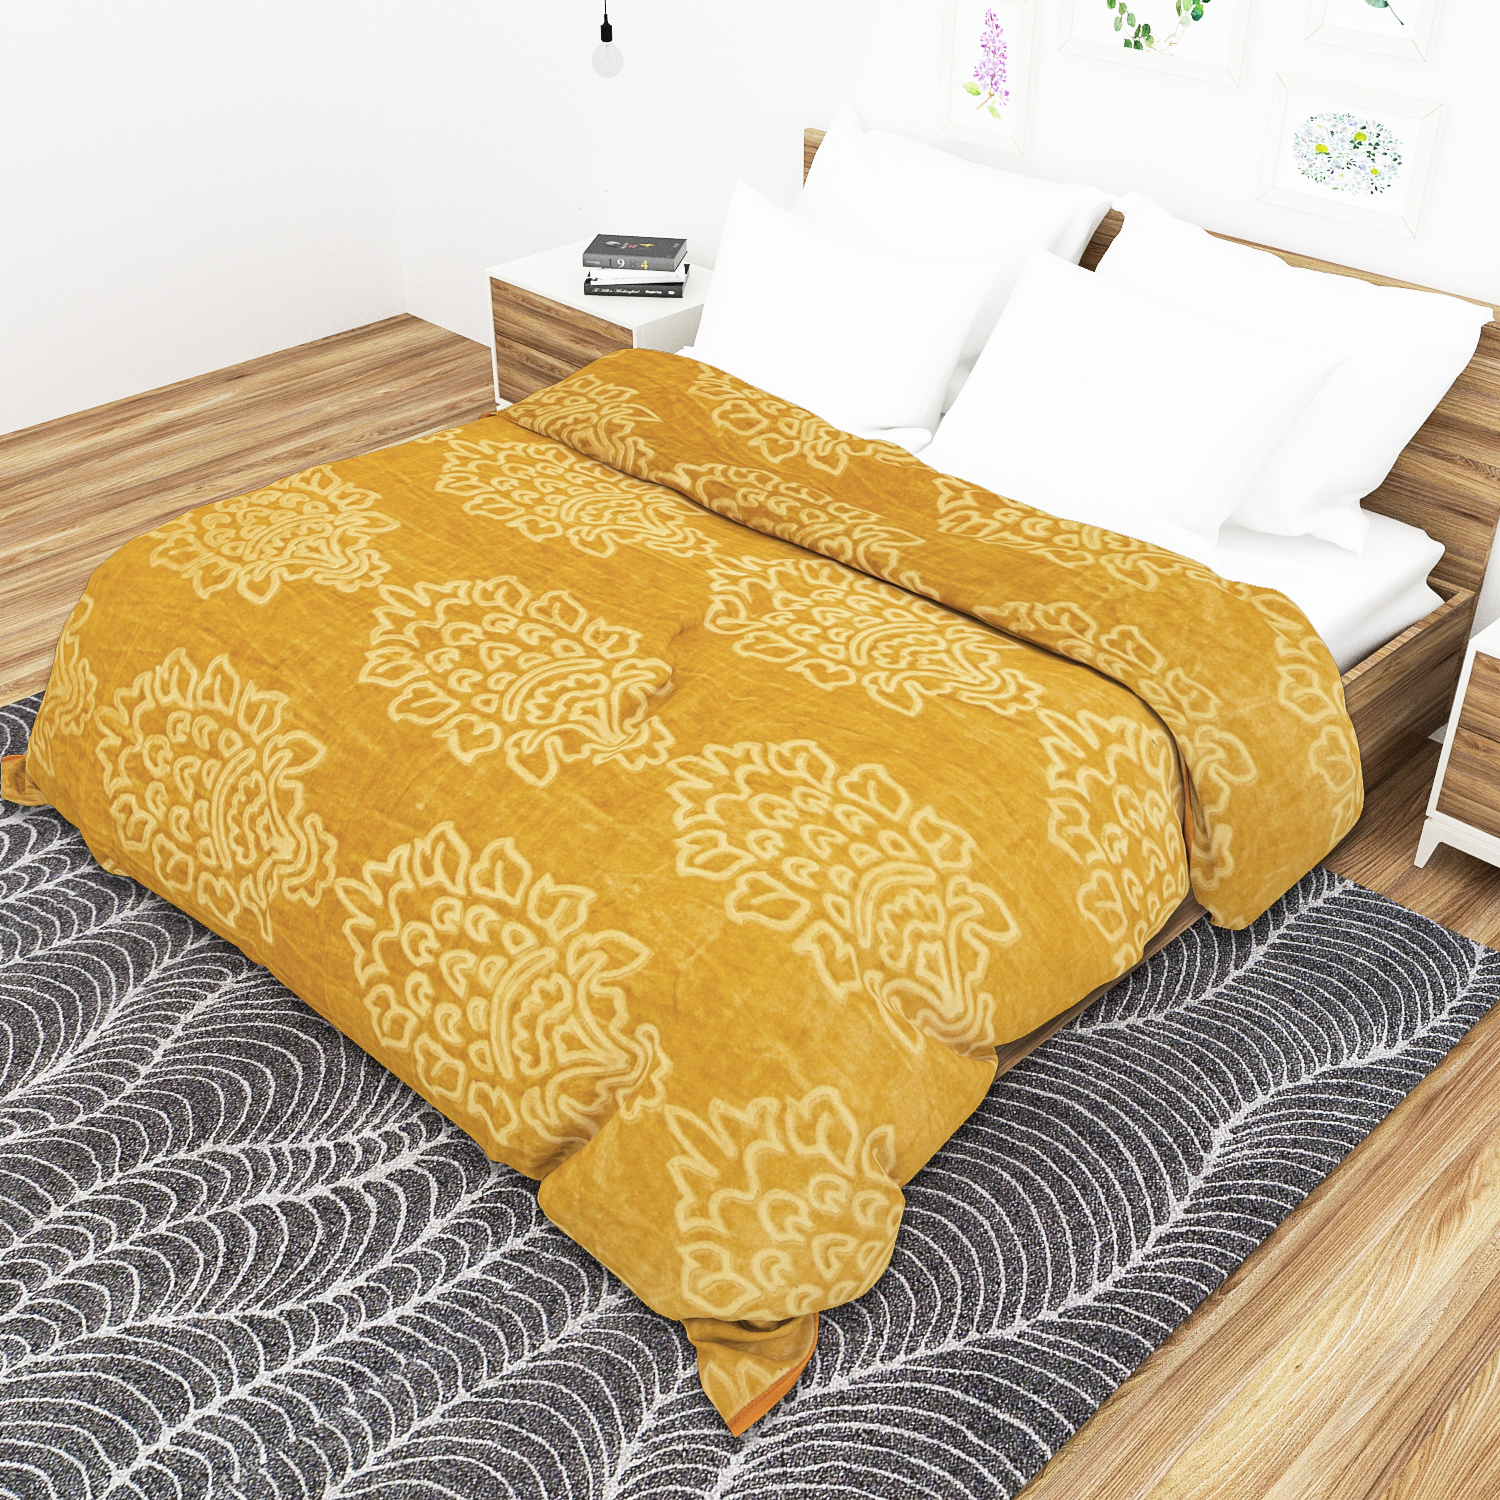 Soft Luxurious Embossed Very Warm Blankets Solid Colour Soft Ultra Floral Microfiber Double Bed Mink Winter Blanket For Winter Pack Of 1